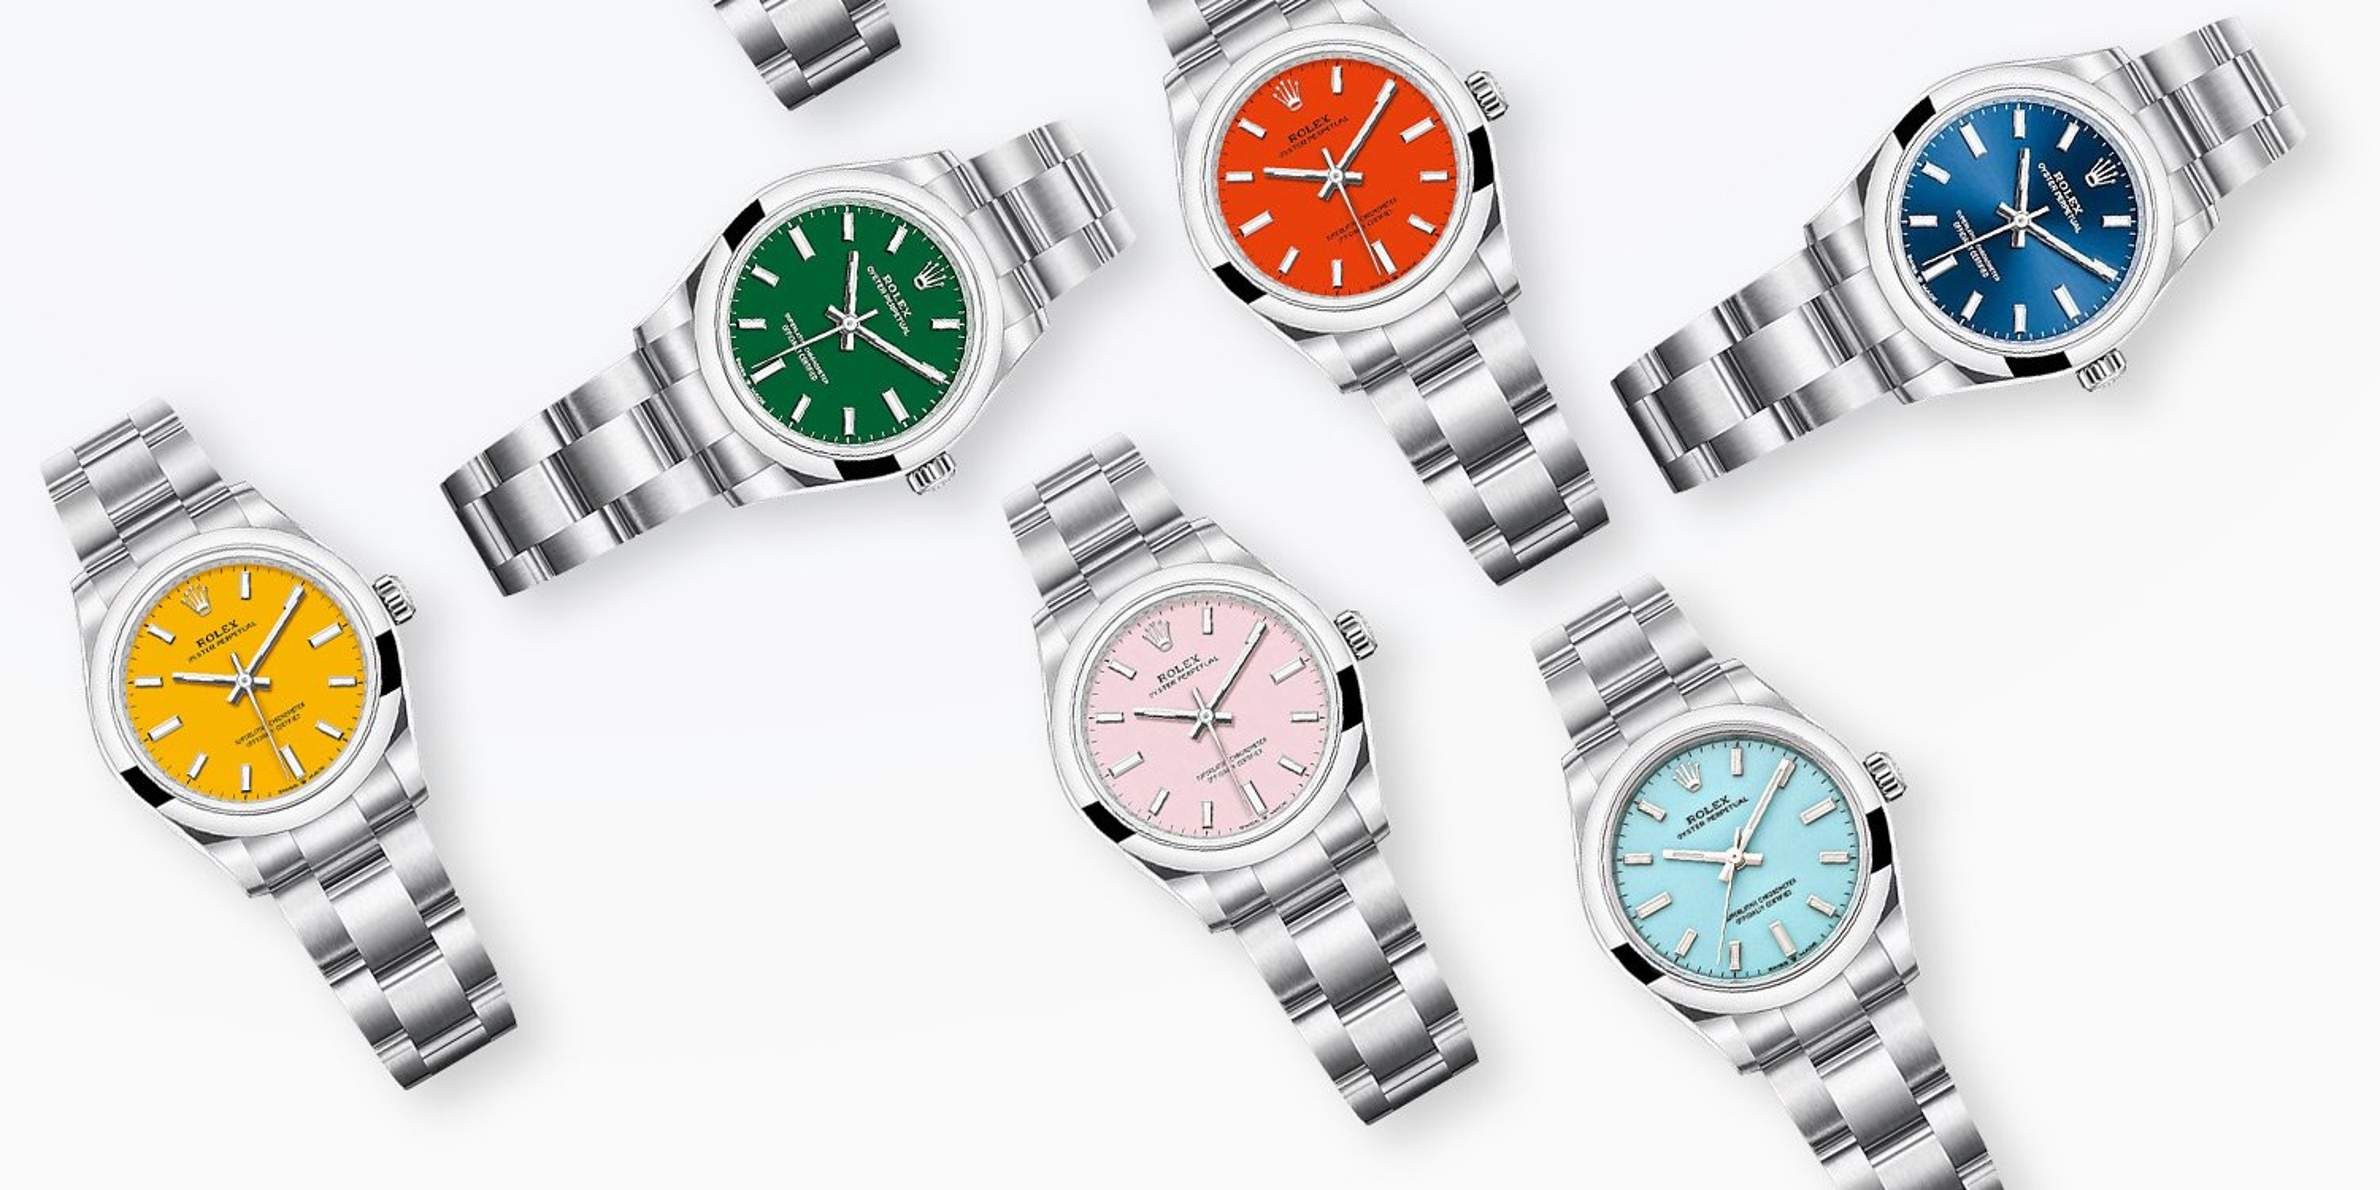 Rolex Rediscovers Its Rainbow of Flavors